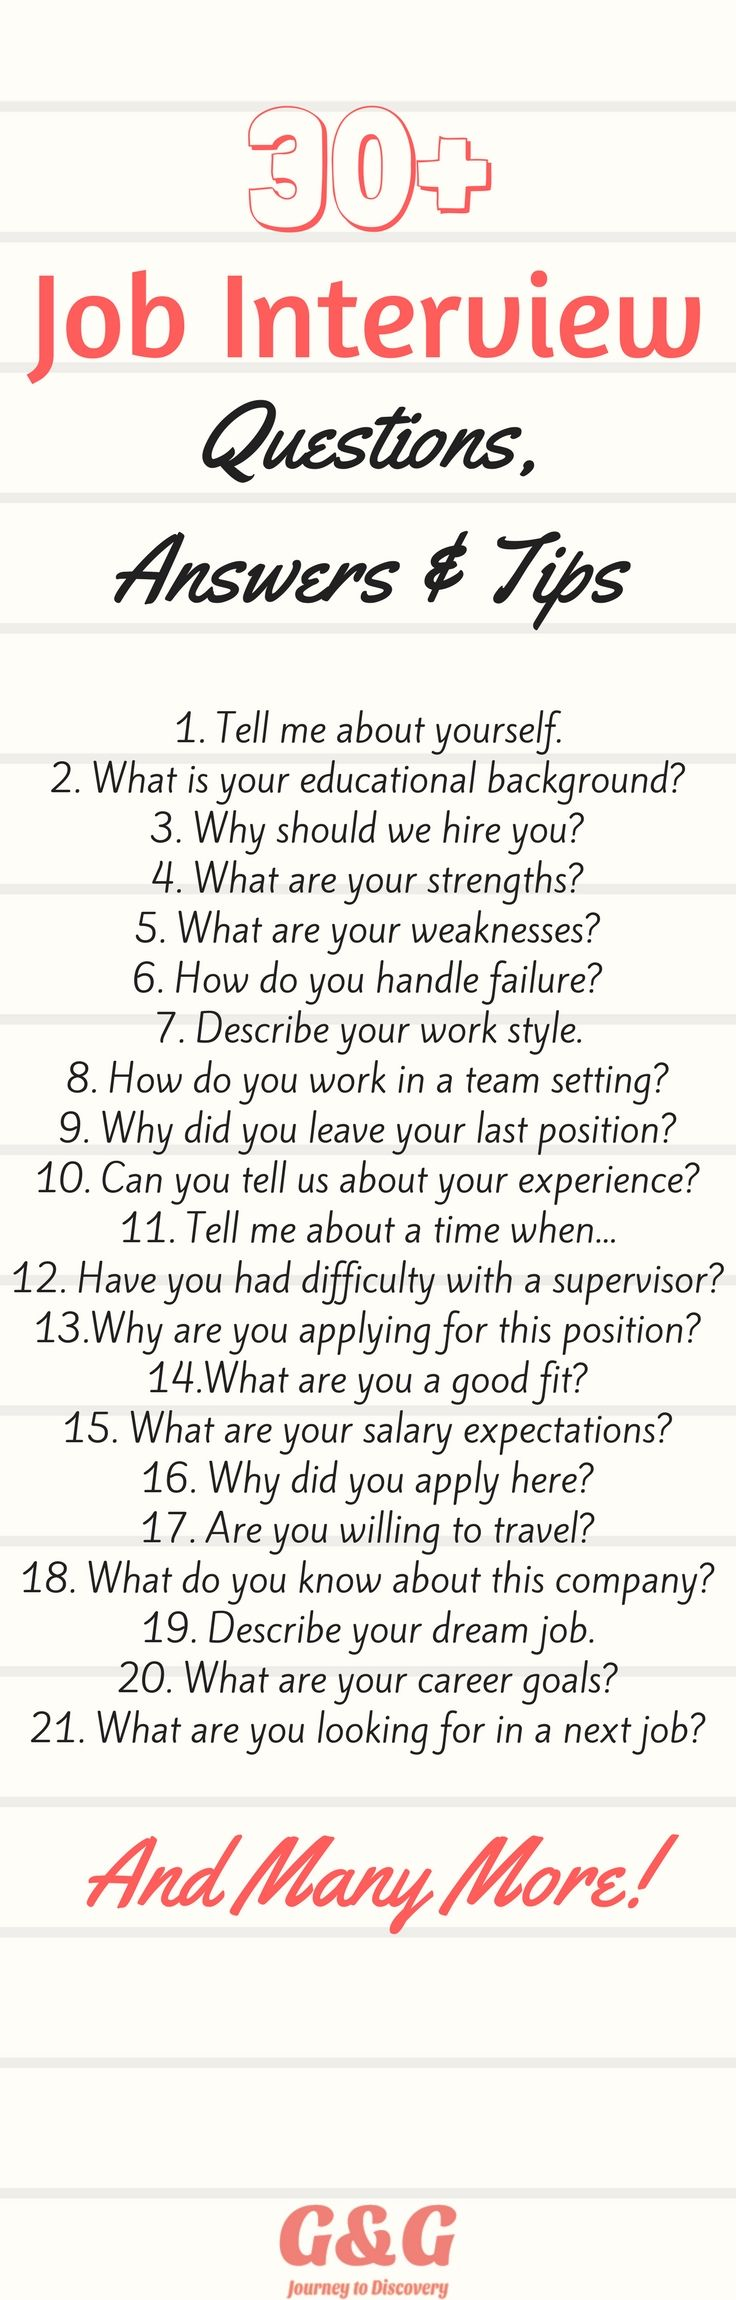 30 Job Interview Questions Answers And Tips For Those Seeking To Rock Their Next